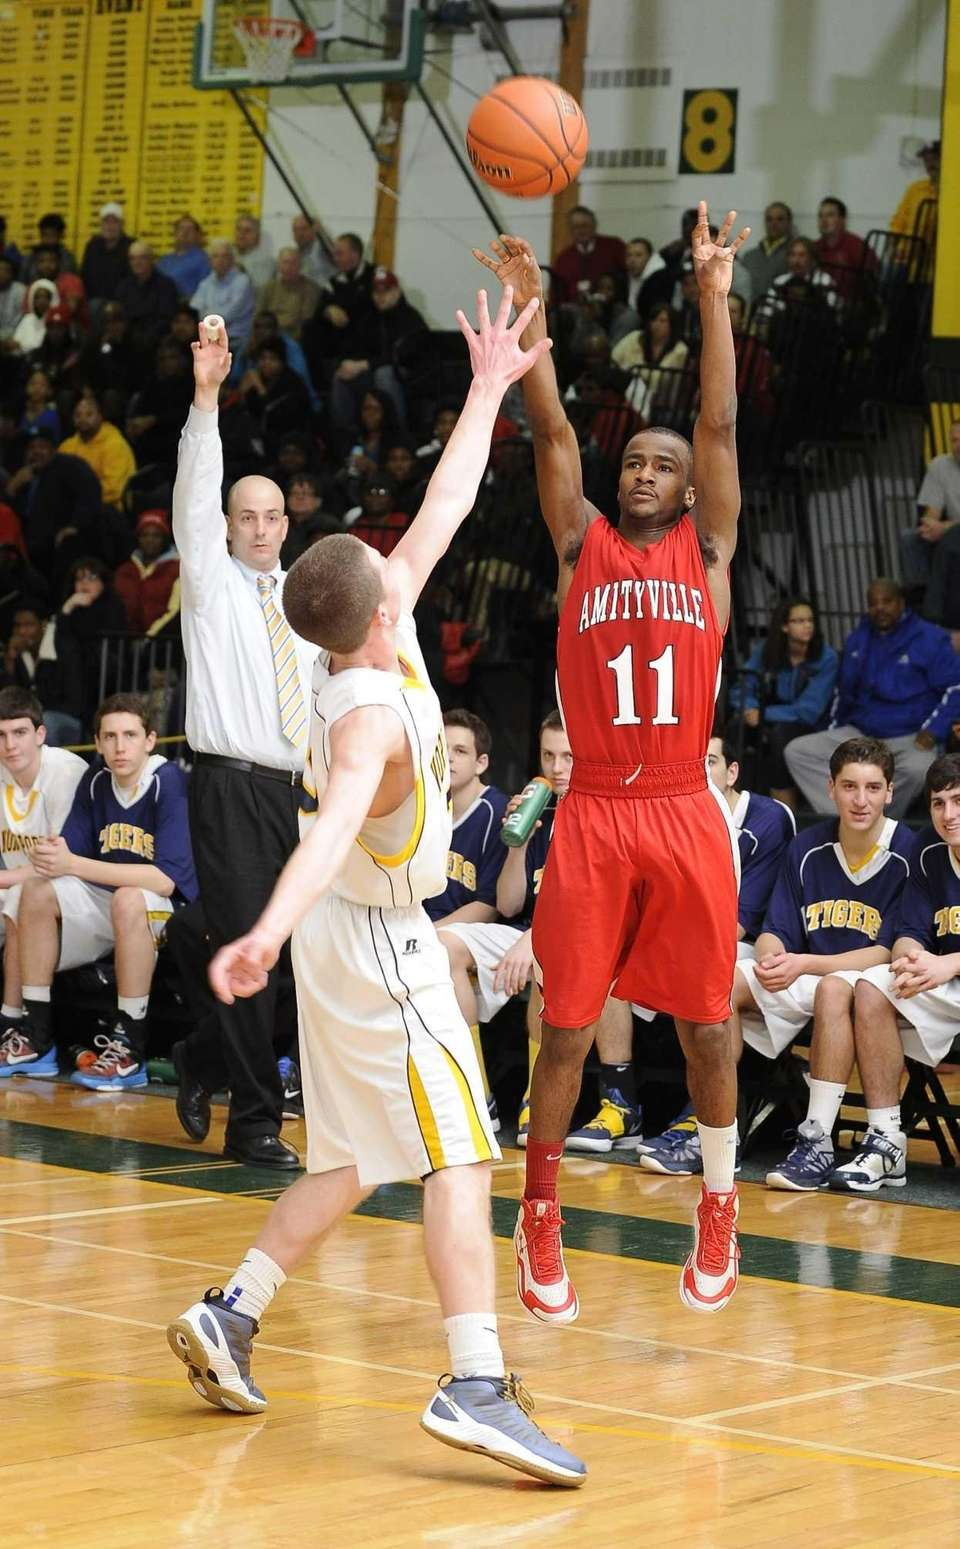 Amityville's Sean Walters shoots a jump shot against